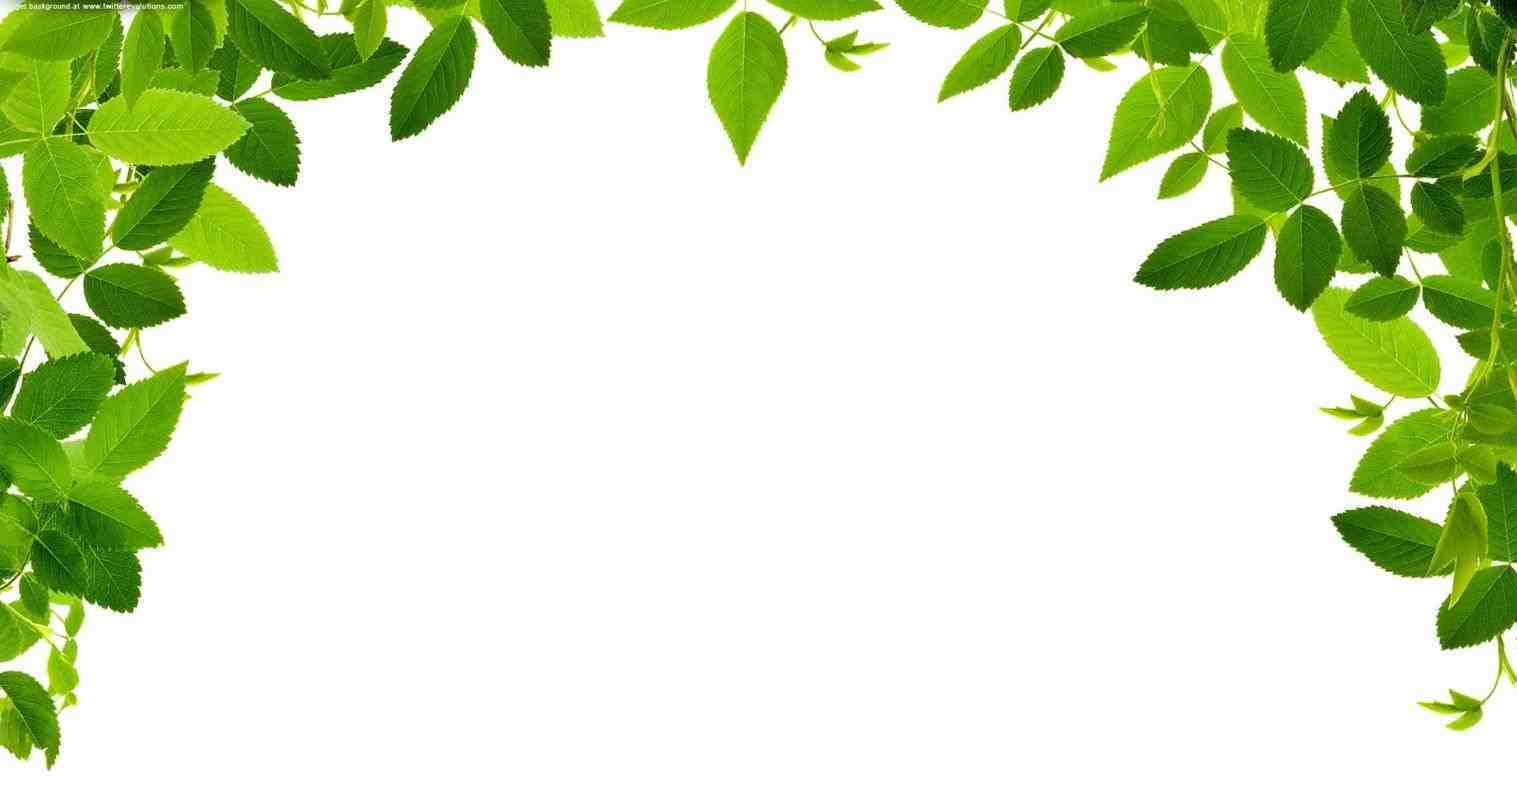 Tree border clipart 5 » Clipart Station.